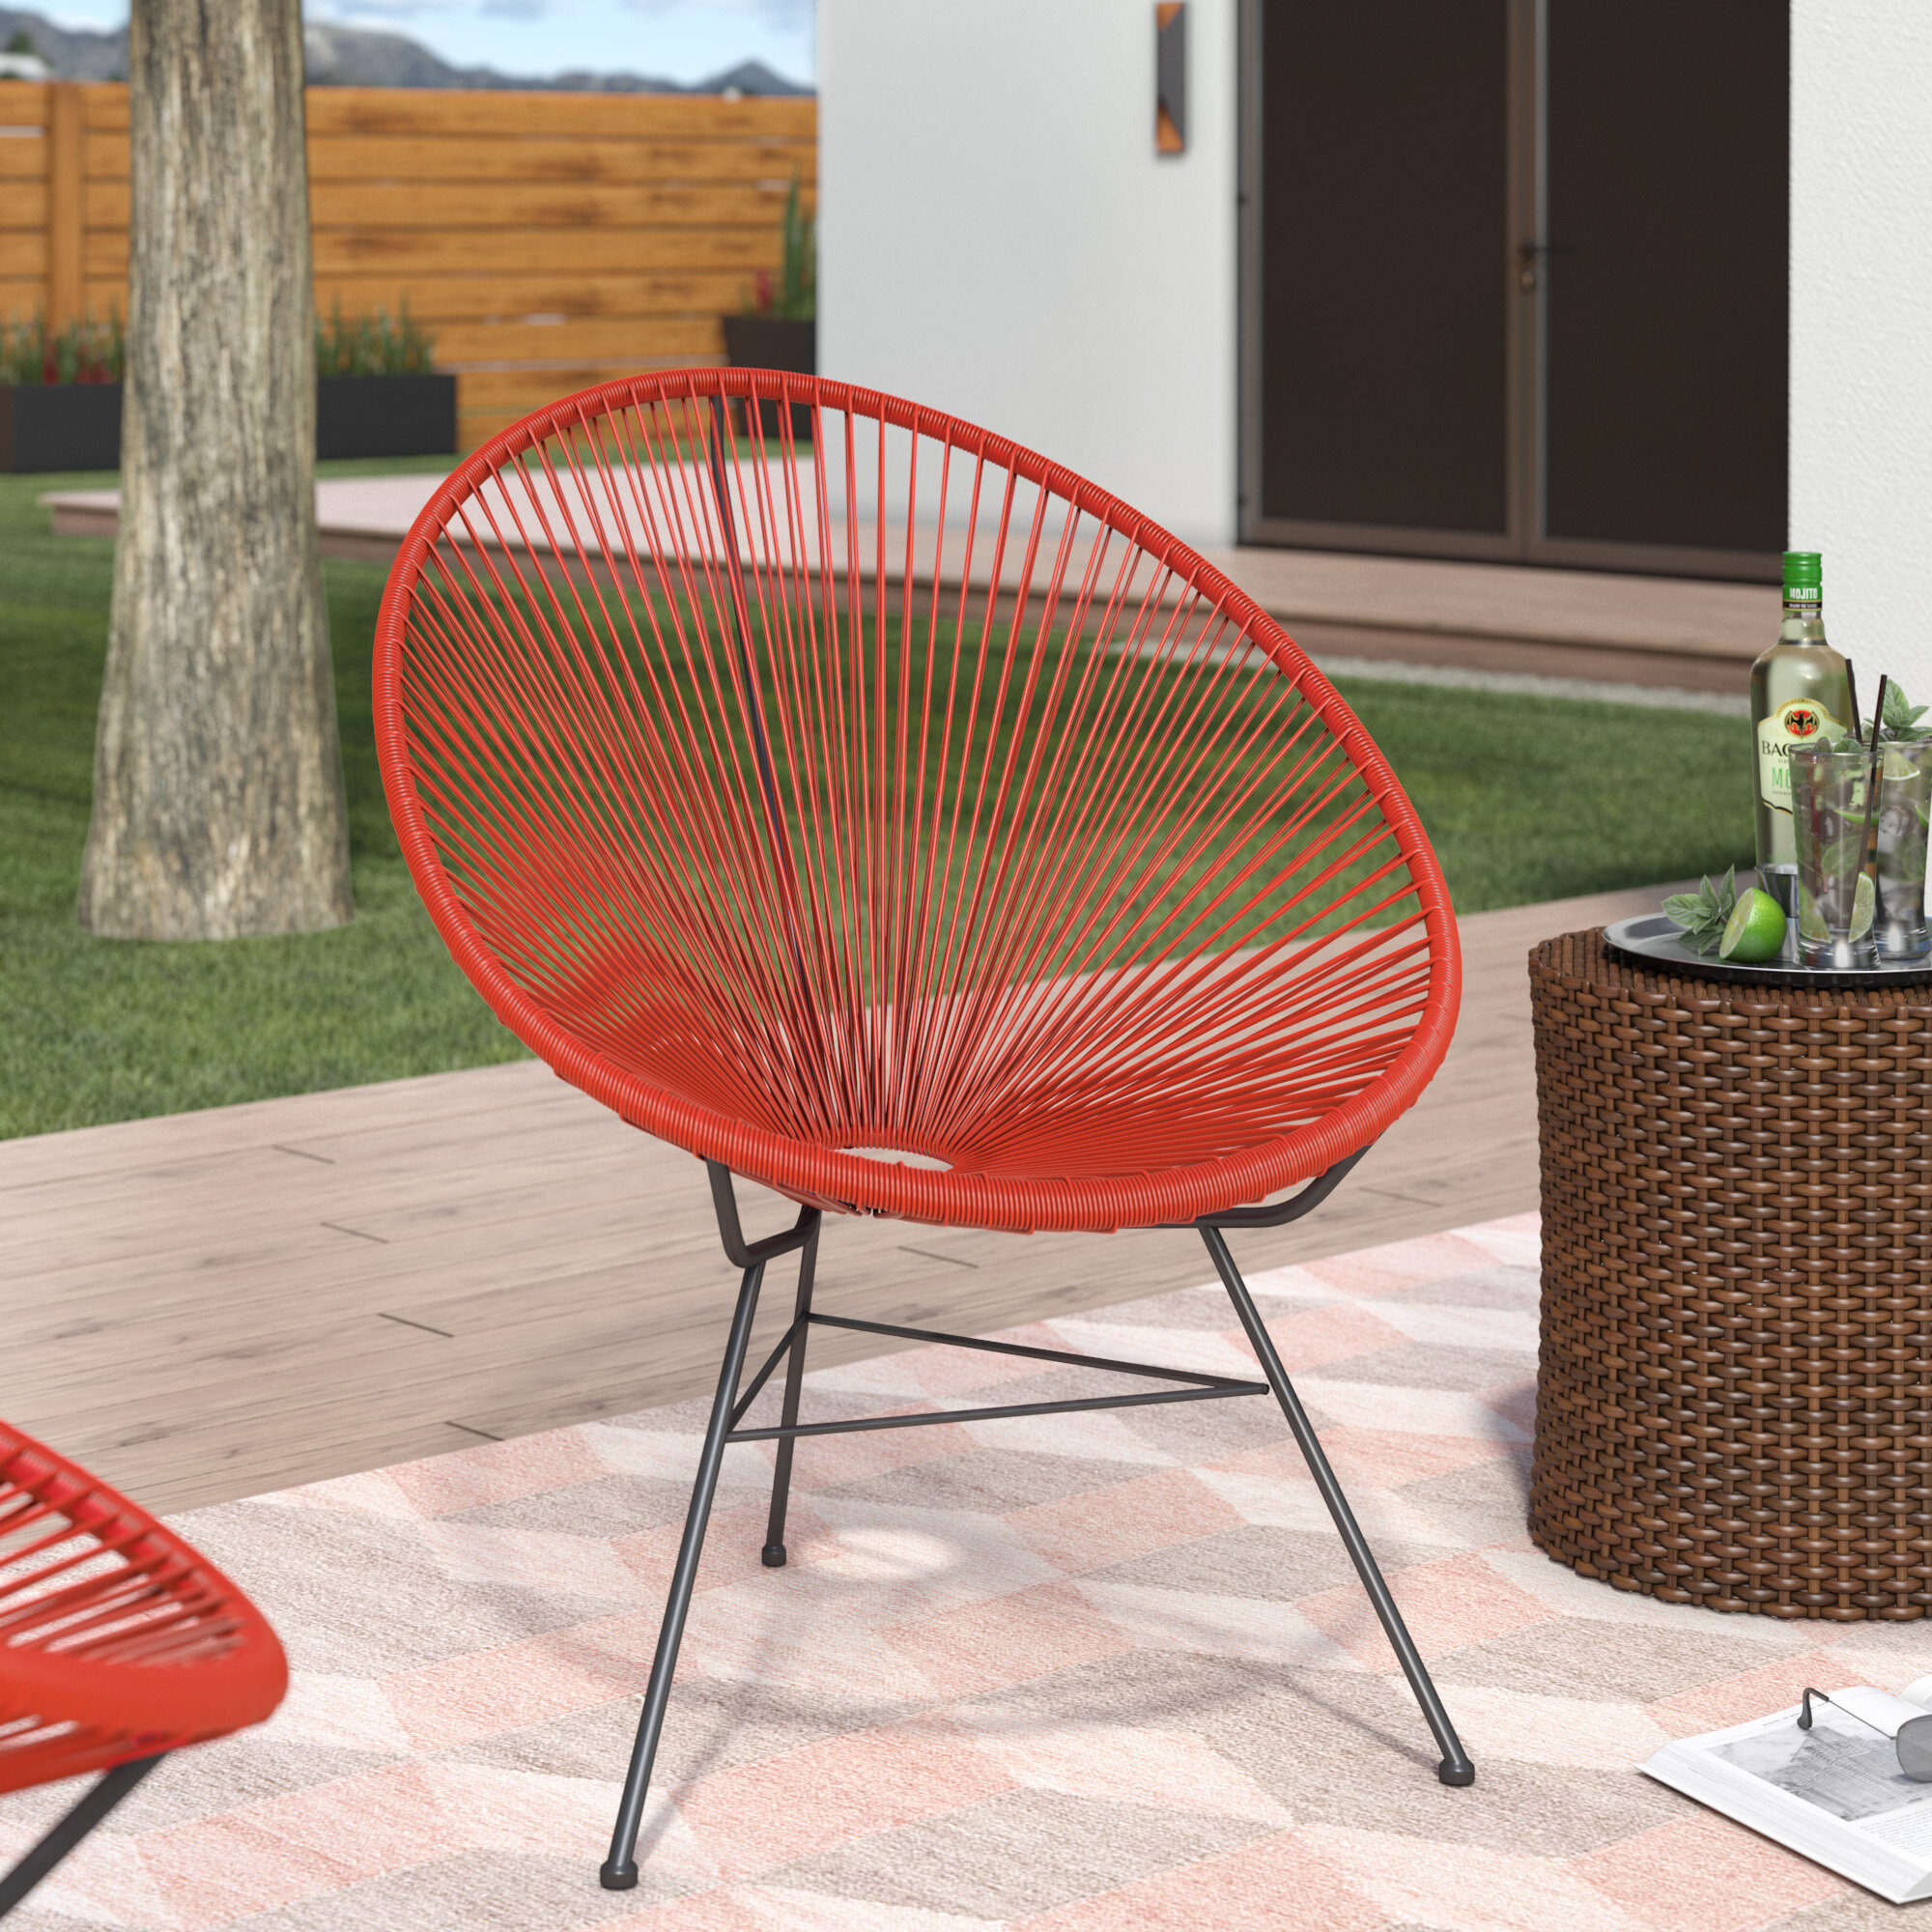 Attirant Ivy Bronx Bradley Acapulco Papasan Outdoor Chair | Wayfair